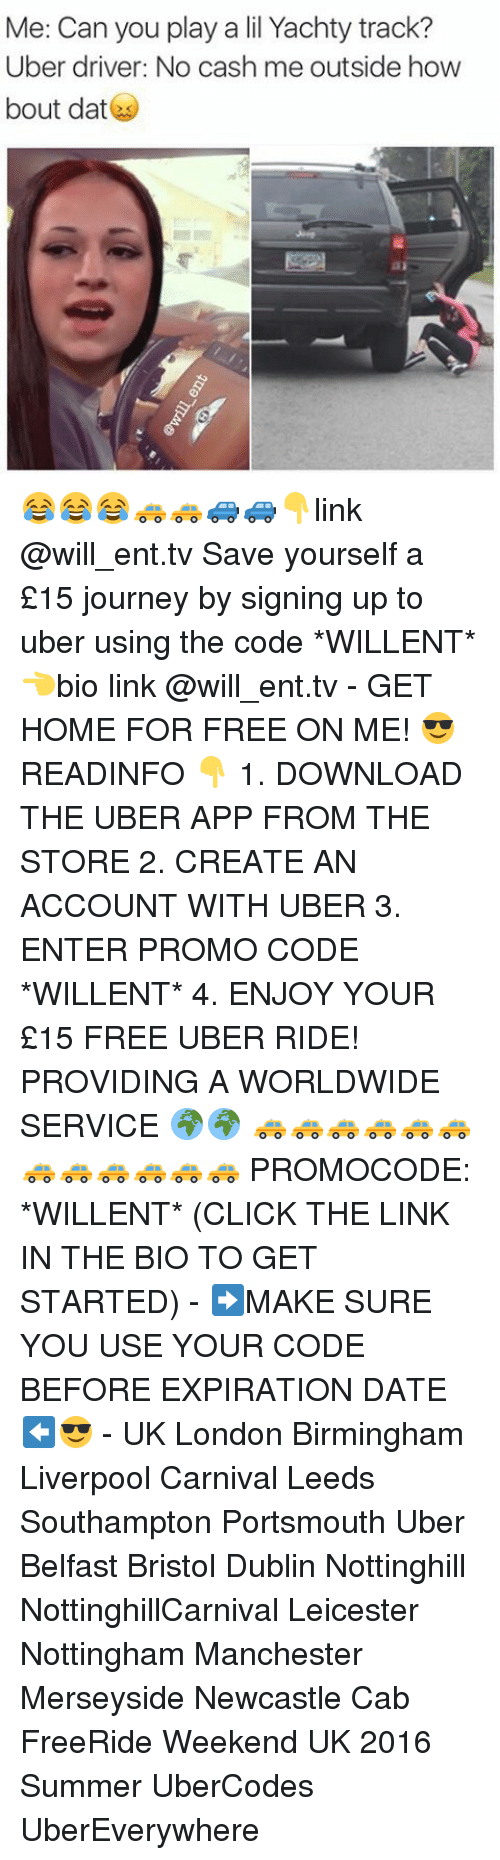 Bout Dat: Me: Can you play a lil Yachty track?  Uber driver: No cash me outside how  bout dat 😂😂😂🚕🚕🚙🚙👇link @will_ent.tv Save yourself a £15 journey by signing up to uber using the code *WILLENT* 👈bio link @will_ent.tv - GET HOME FOR FREE ON ME! 😎 READINFO 👇 1. DOWNLOAD THE UBER APP FROM THE STORE 2. CREATE AN ACCOUNT WITH UBER 3. ENTER PROMO CODE *WILLENT* 4. ENJOY YOUR £15 FREE UBER RIDE! PROVIDING A WORLDWIDE SERVICE 🌍🌍 🚕🚕🚕🚕🚕🚕🚕🚕🚕🚕🚕🚕 PROMOCODE: *WILLENT* (CLICK THE LINK IN THE BIO TO GET STARTED) - ➡️MAKE SURE YOU USE YOUR CODE BEFORE EXPIRATION DATE ⬅️😎 - UK London Birmingham Liverpool Carnival Leeds Southampton Portsmouth Uber Belfast Bristol Dublin Nottinghill NottinghillCarnival Leicester Nottingham Manchester Merseyside Newcastle Cab FreeRide Weekend UK 2016 Summer UberCodes UberEverywhere